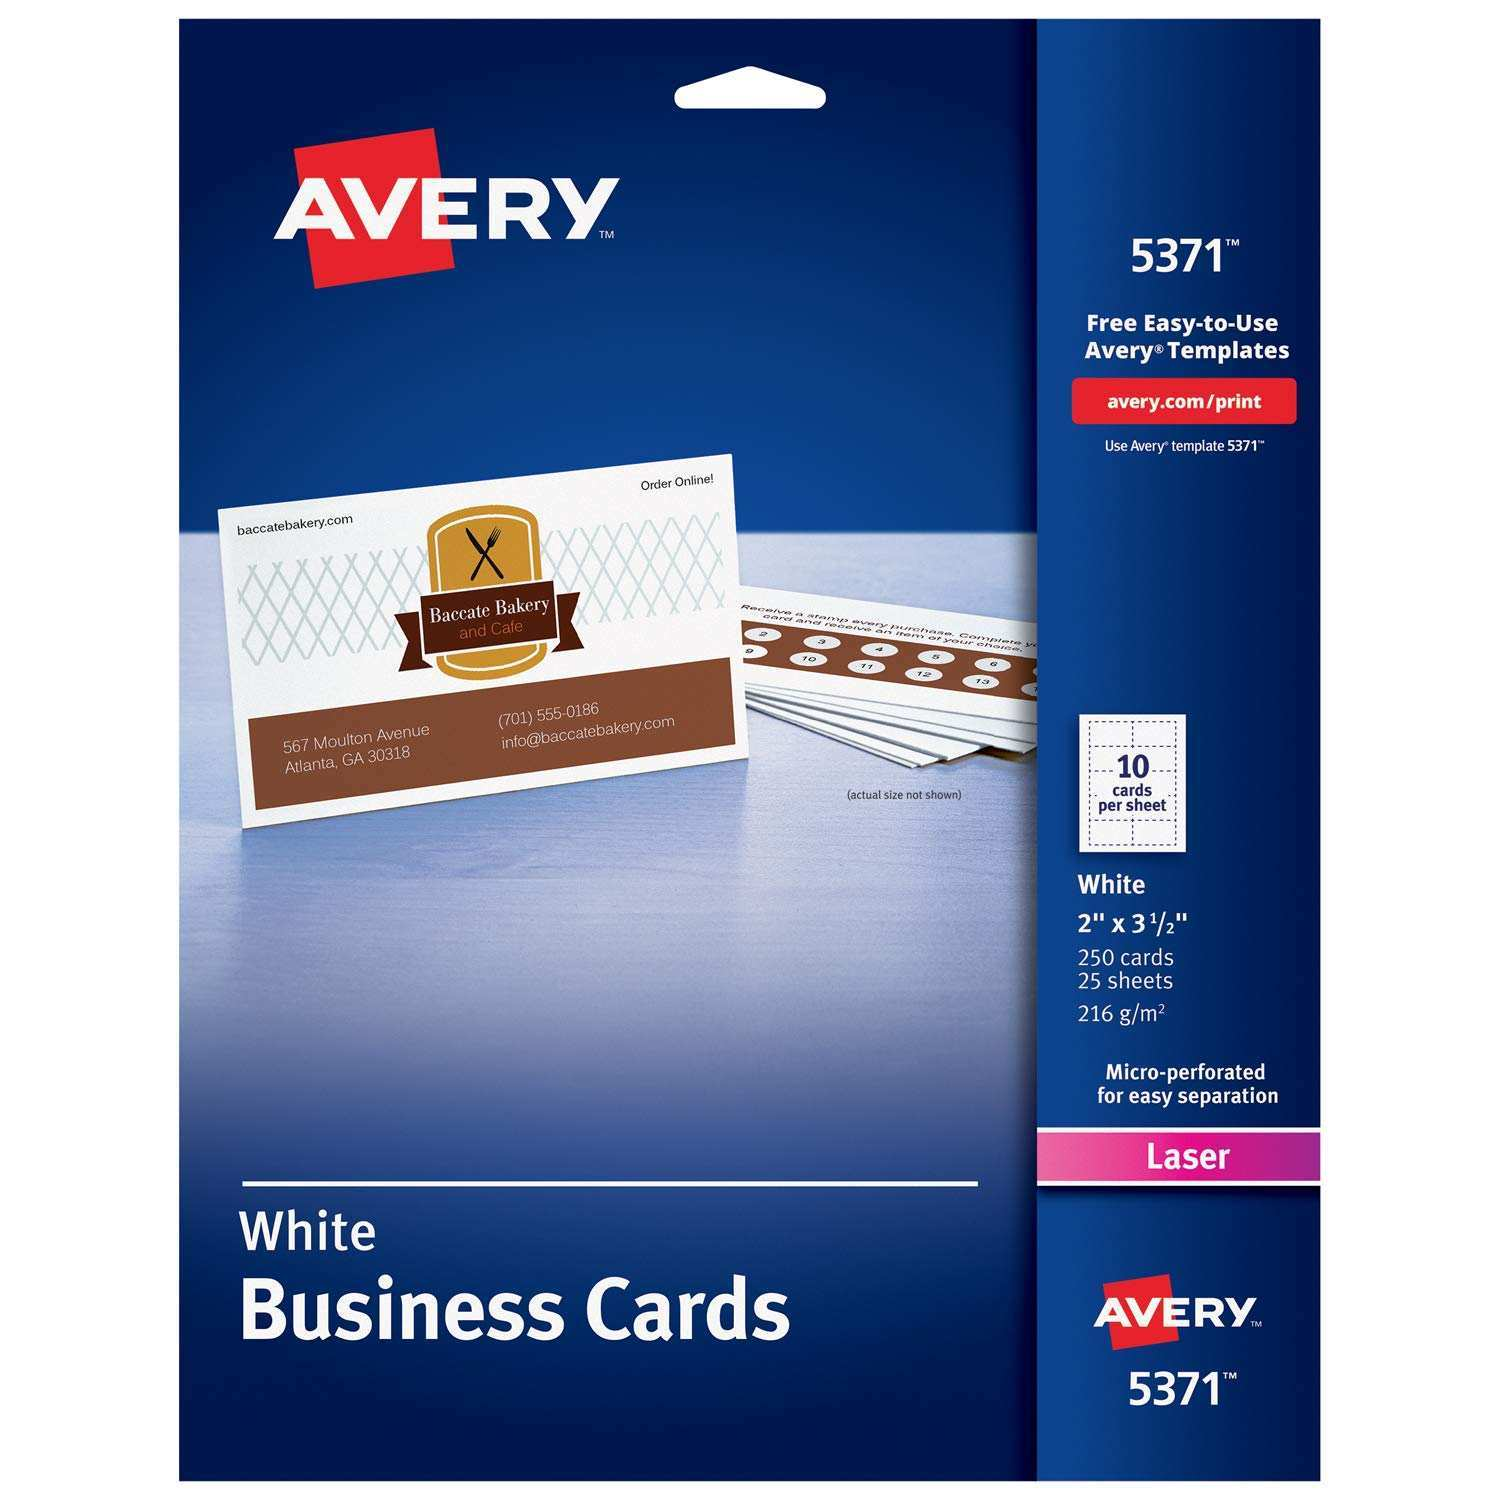 12 Free Avery Business Card Template 05371 PSD File with Avery Business Card Template 05371